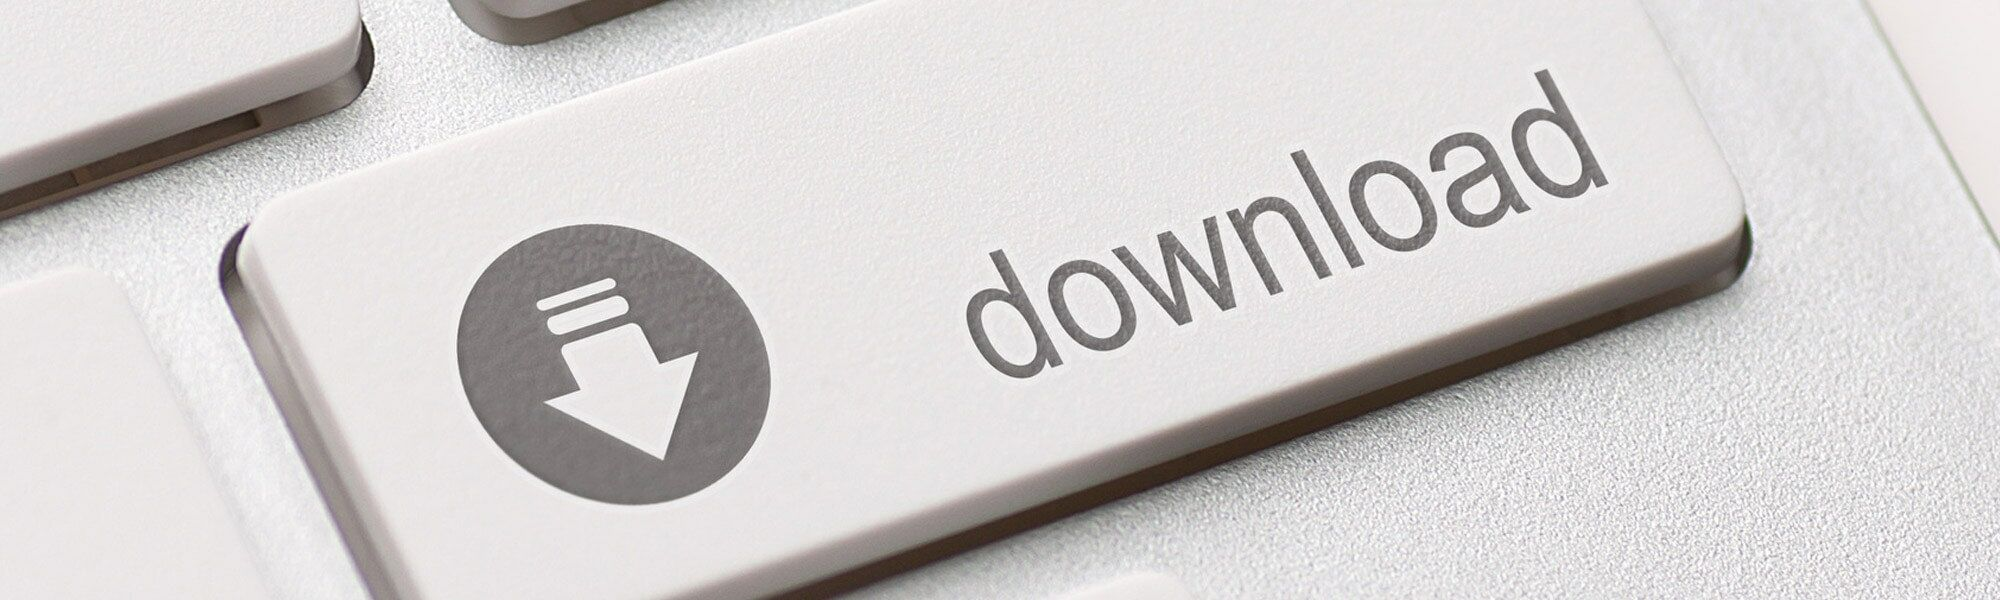 GNTHER downloads – Regulating unit instructions, operating ...